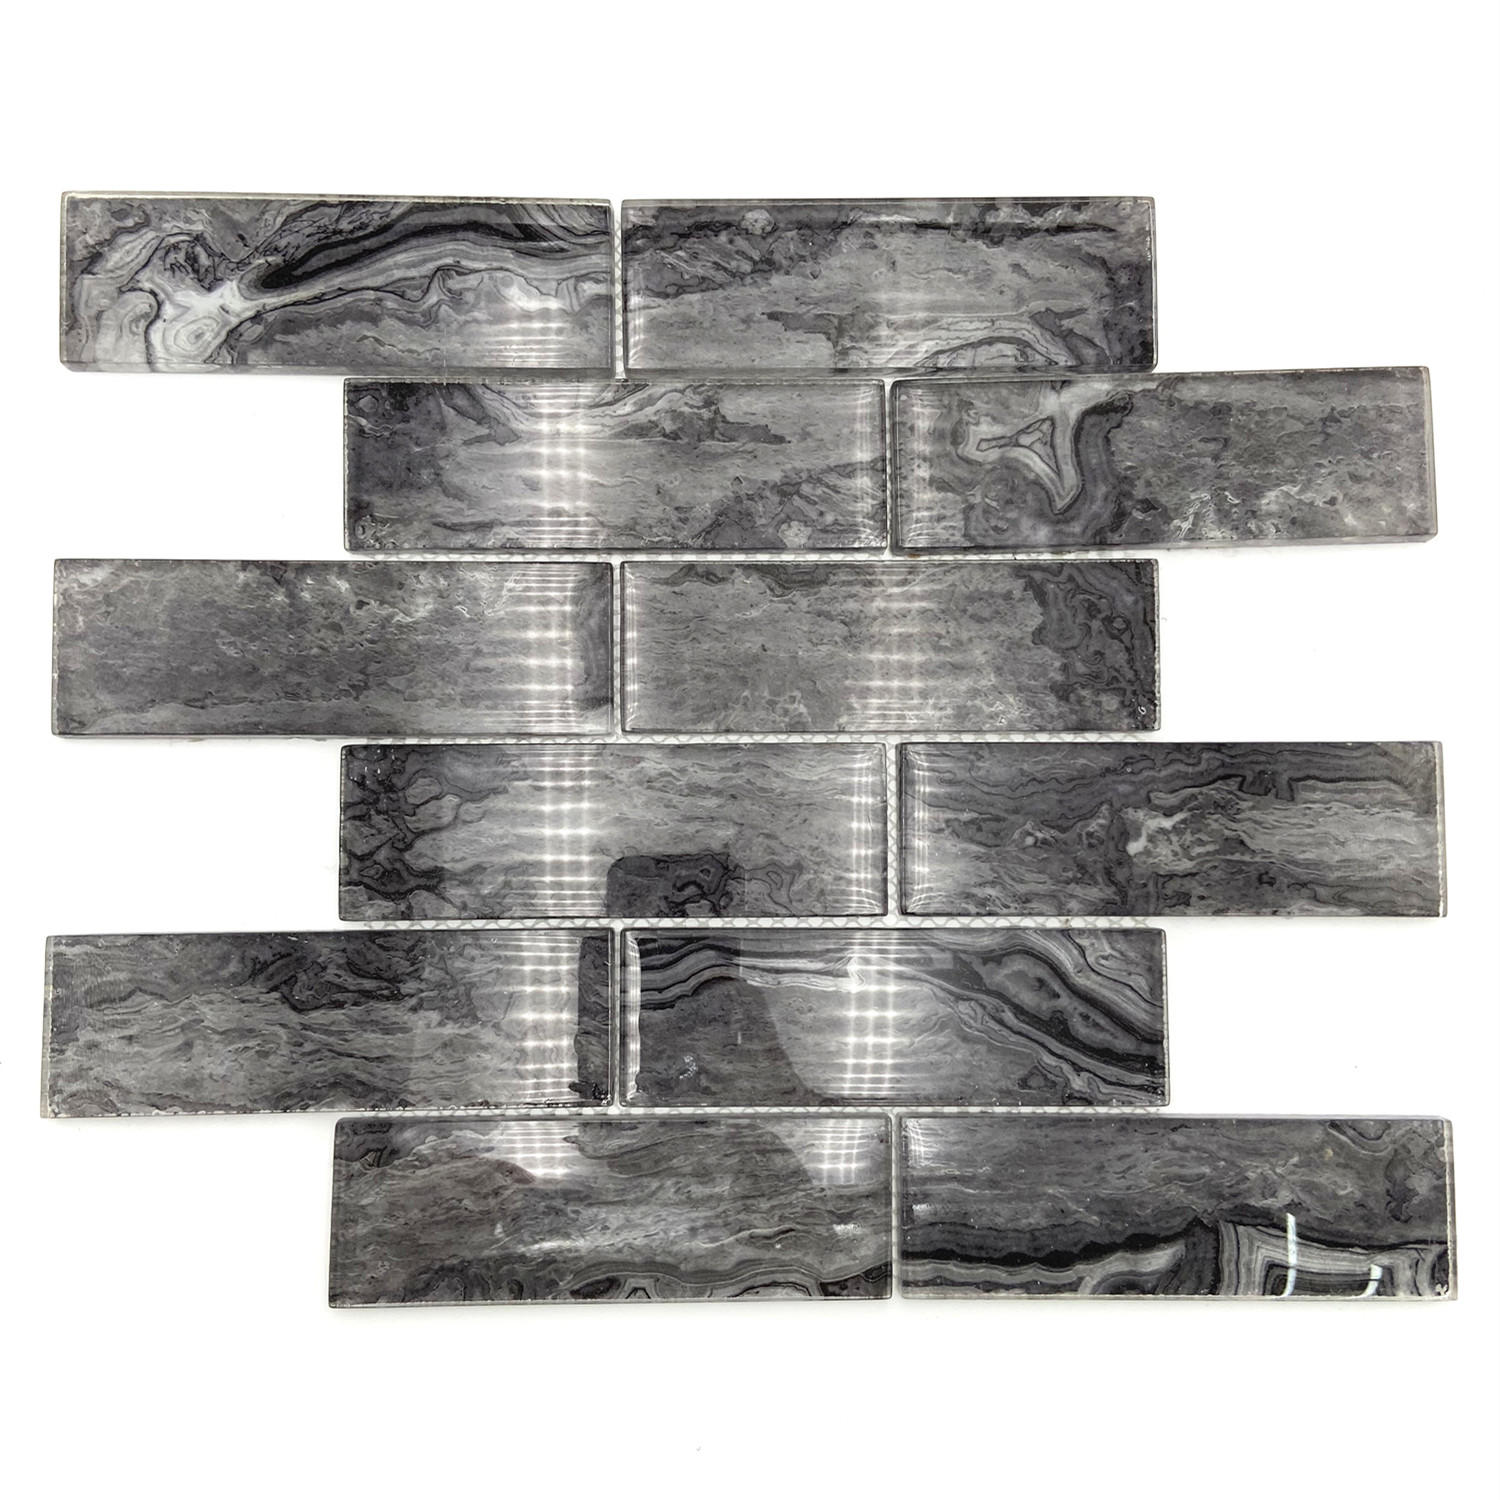 Black marble pattern glass mosaic tile